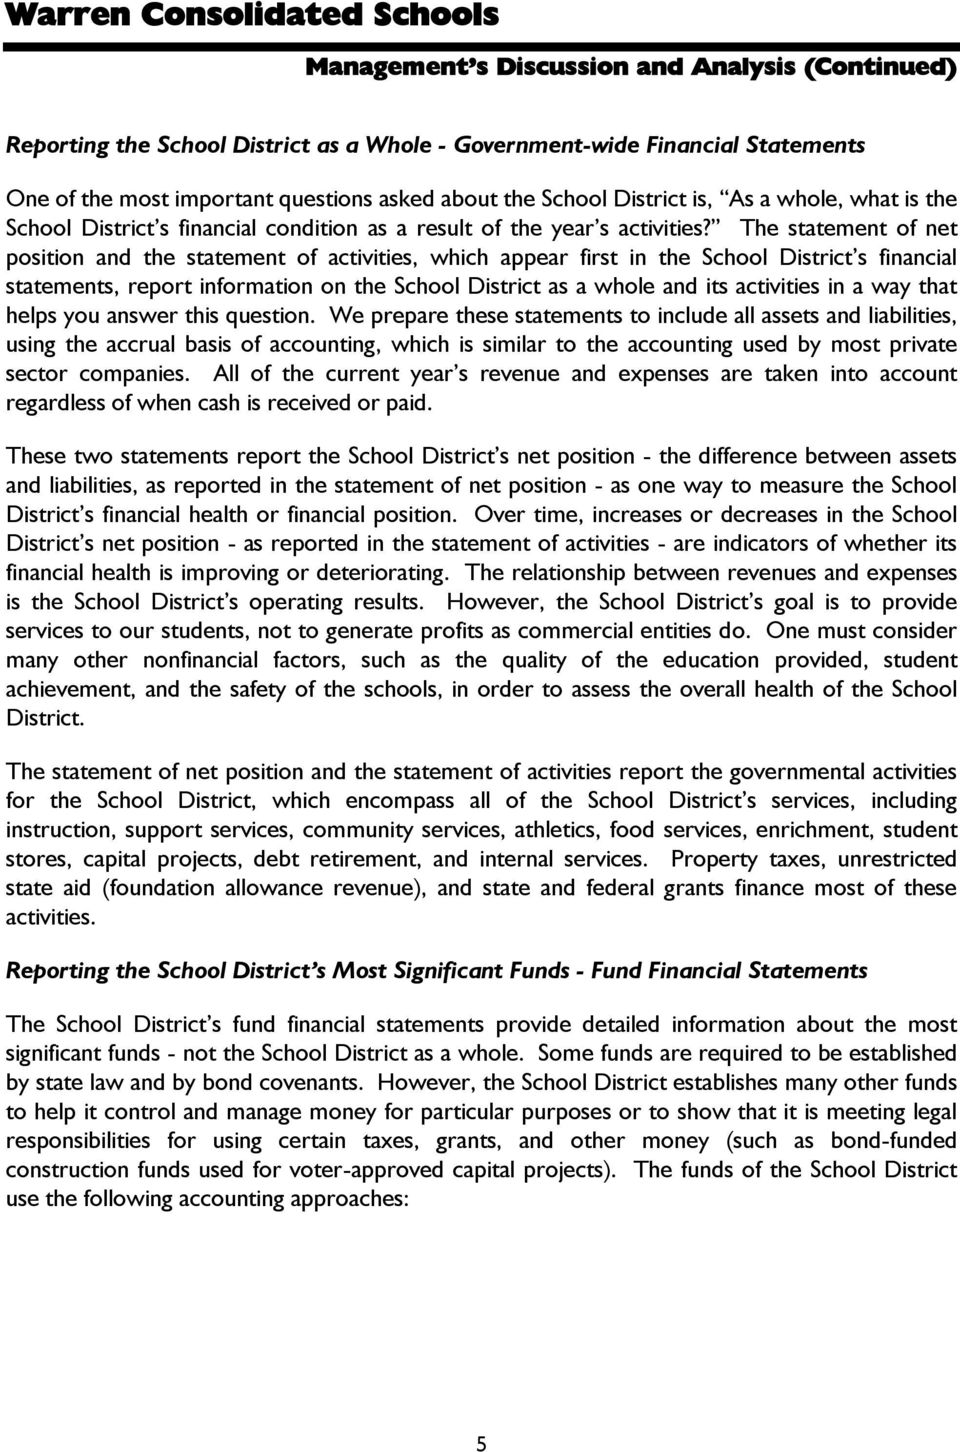 The statement of net position and the statement of activities, which appear first in the School District s financial statements, report information on the School District as a whole and its